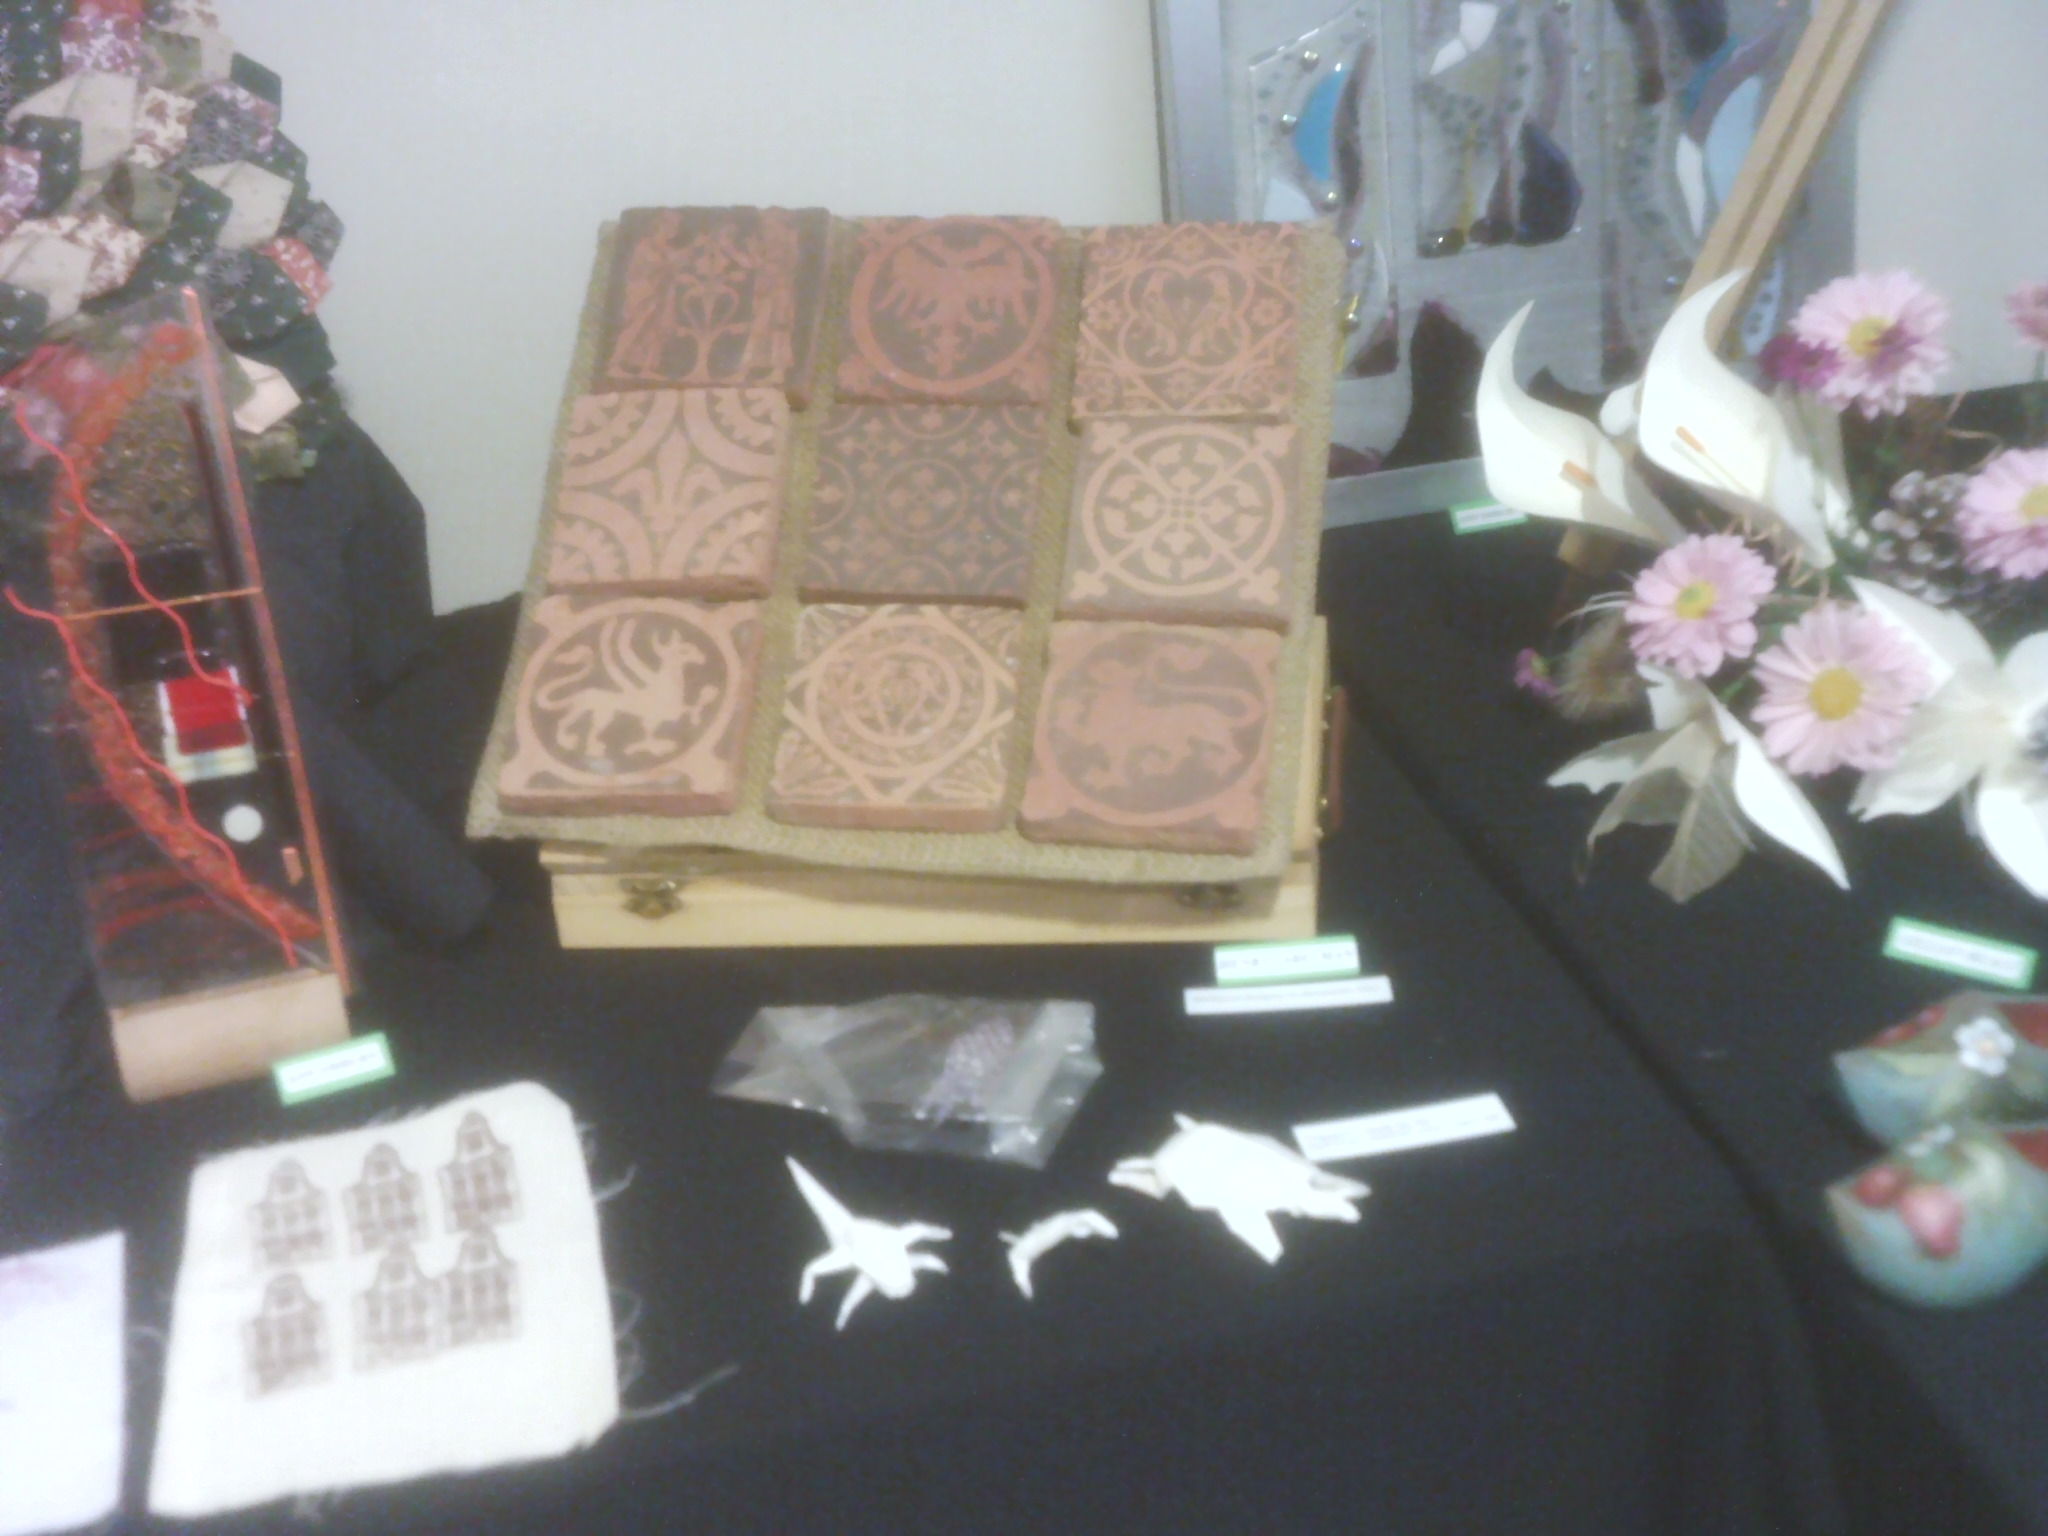 Tiles and origami at the Willersey Craft Show